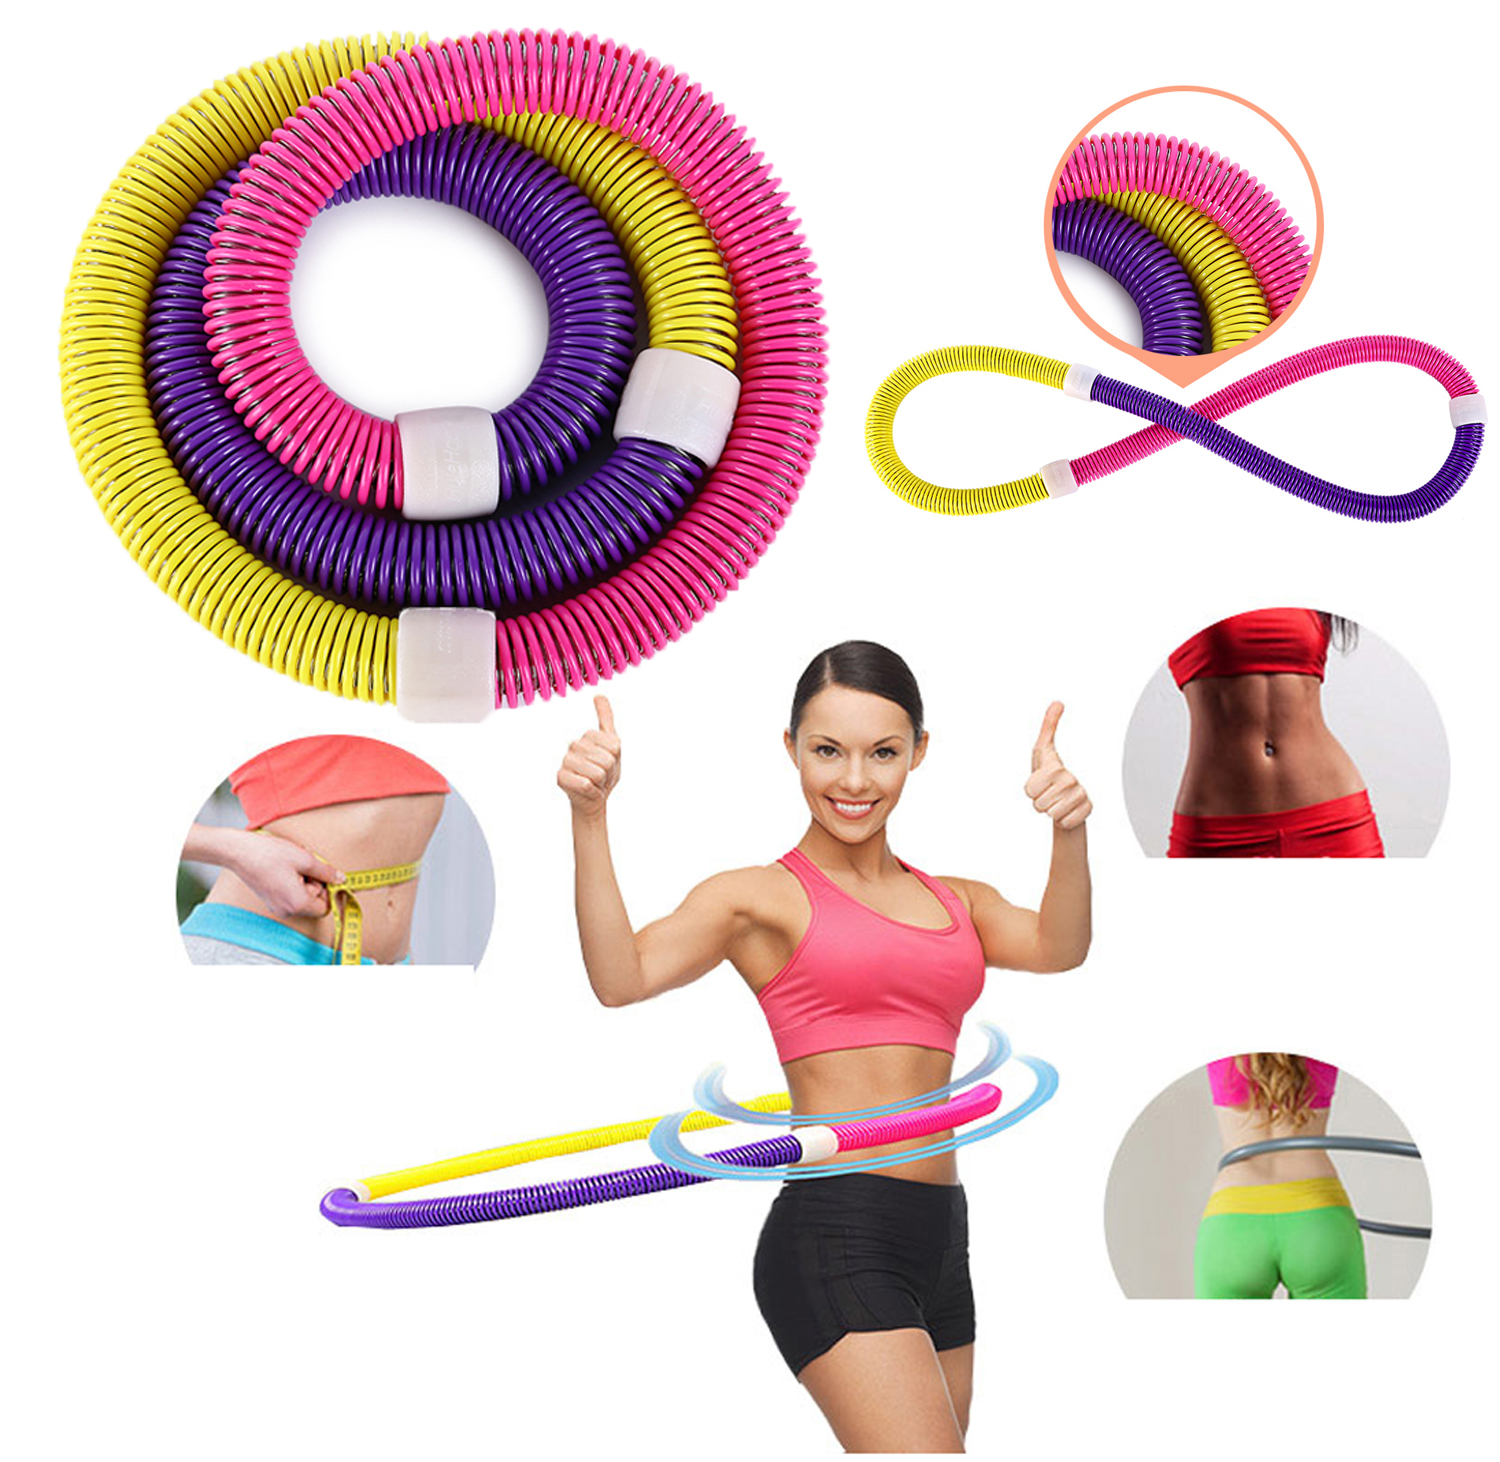 Fitness Hula Hoop Sports Hoop For font b Weight b font font b Loss b font